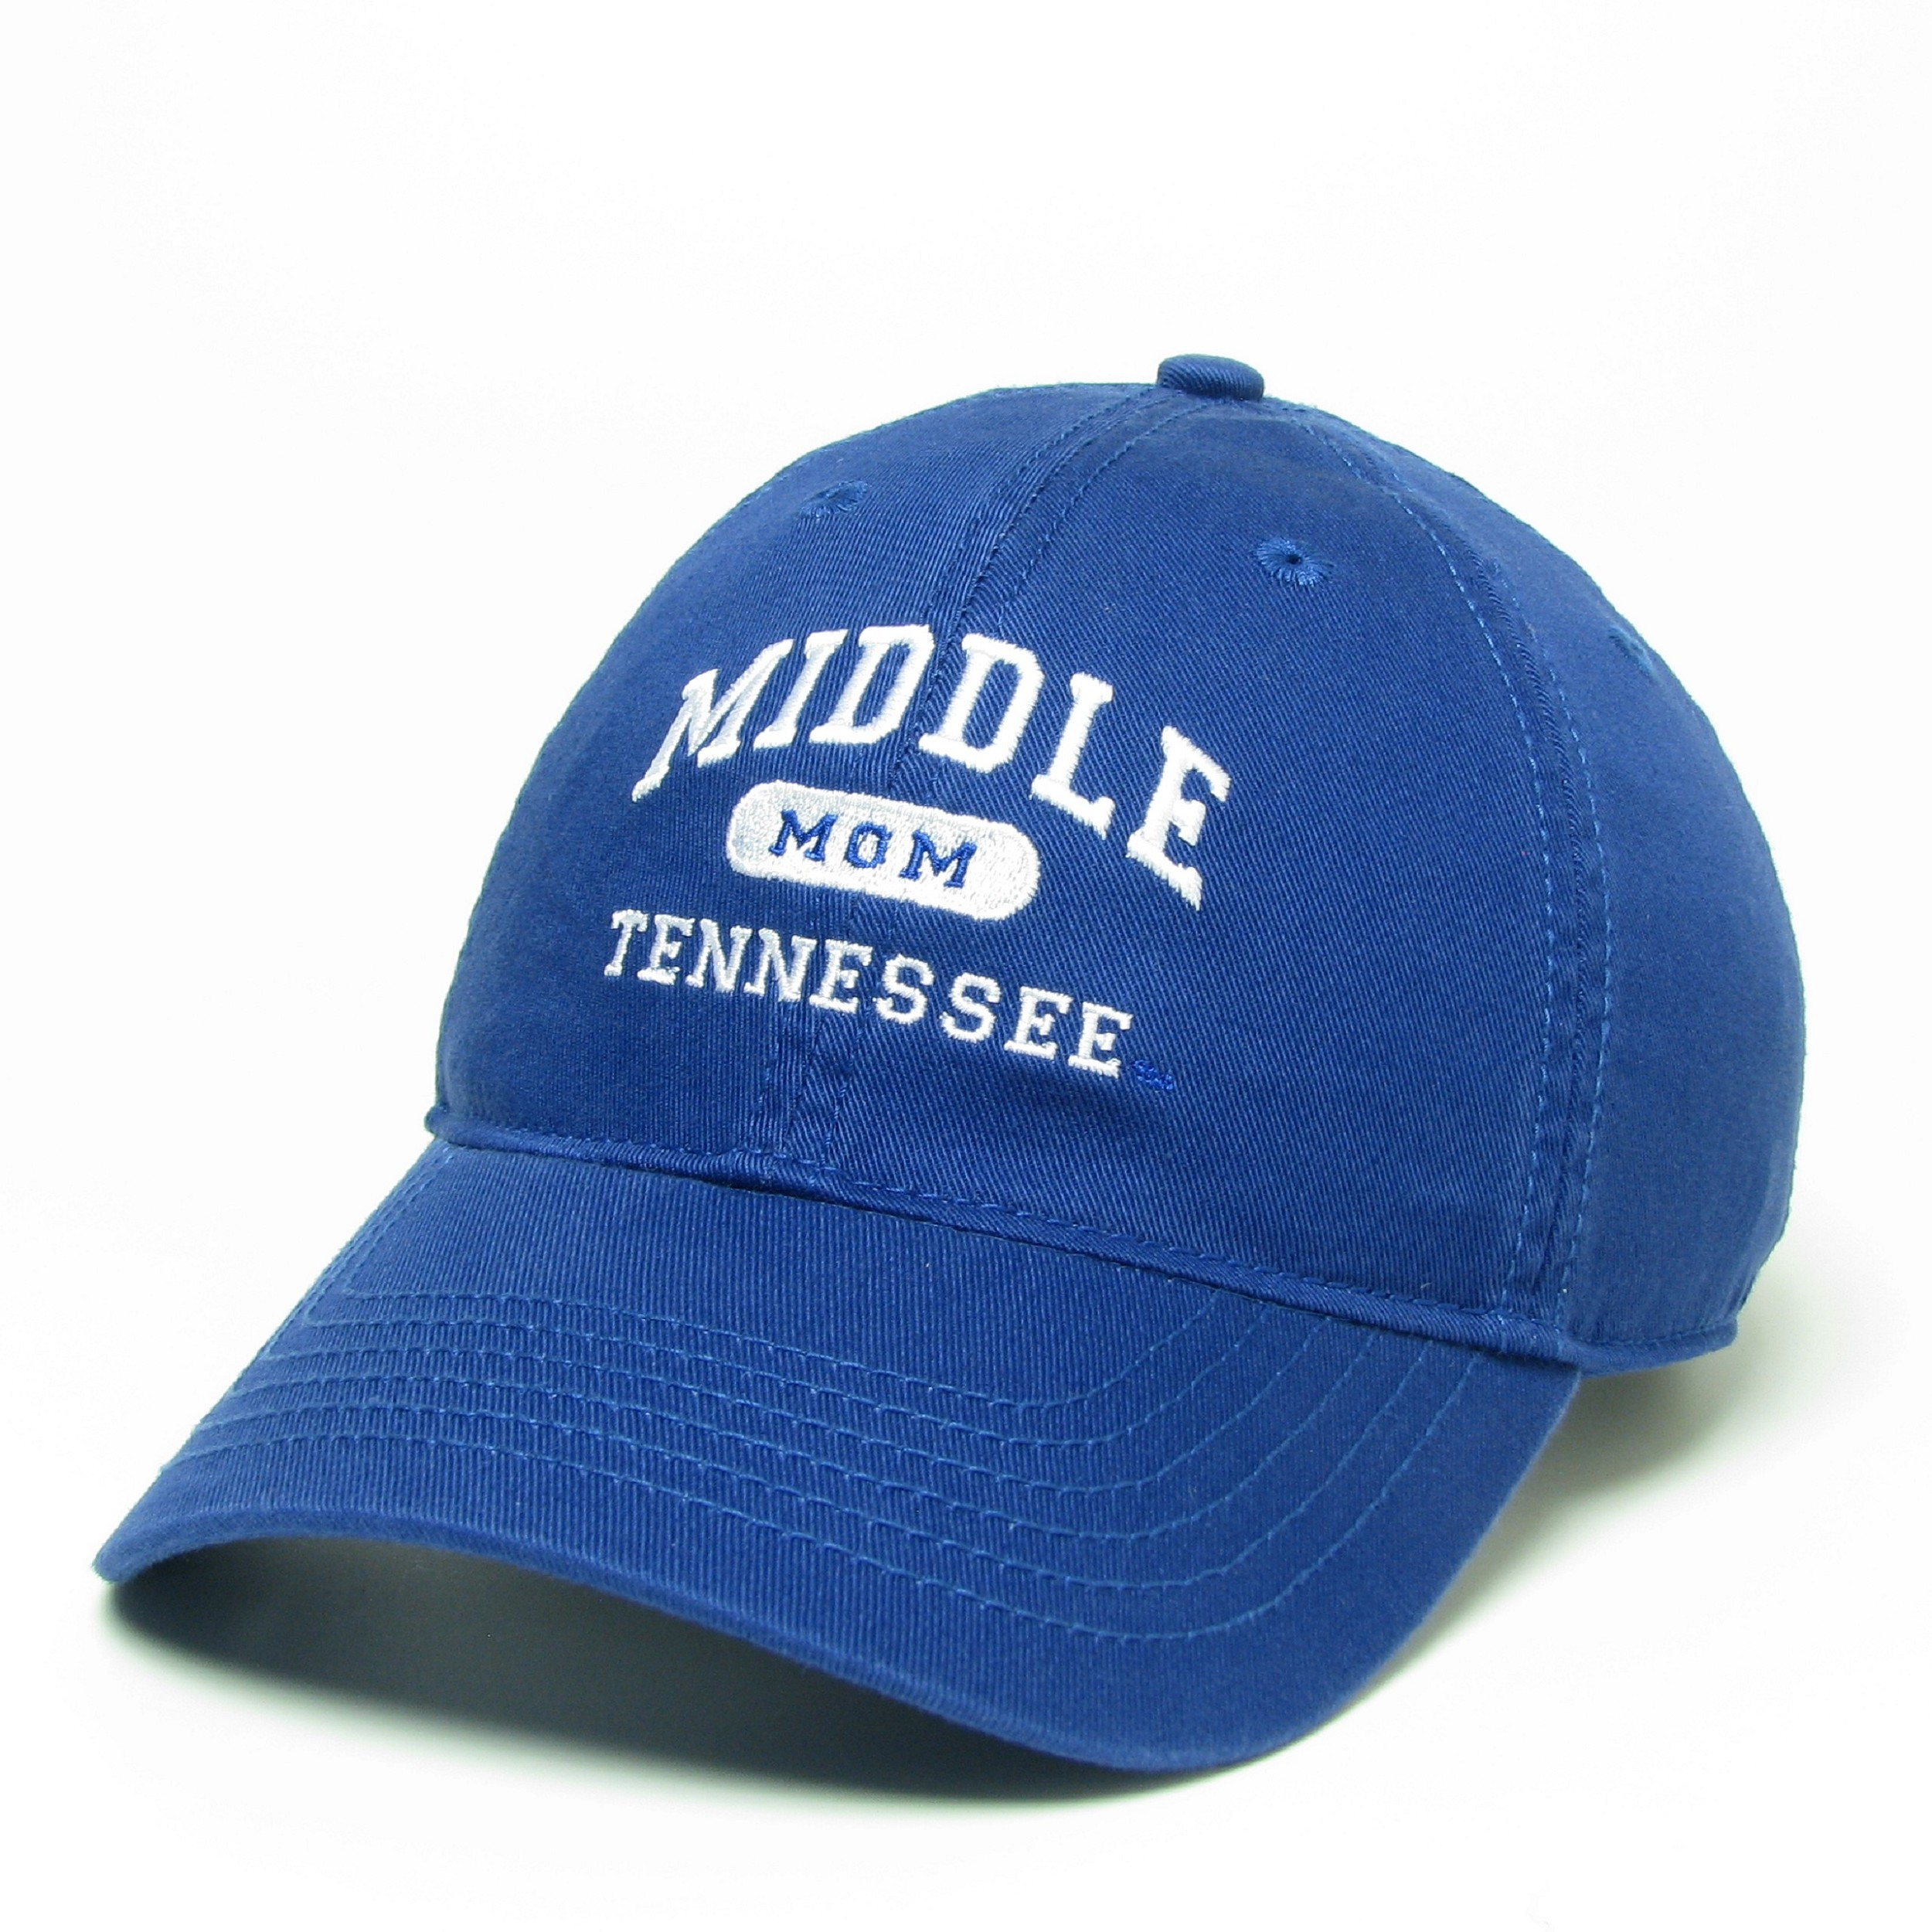 Middle Tennessee Mom Relaxed Twill Hat